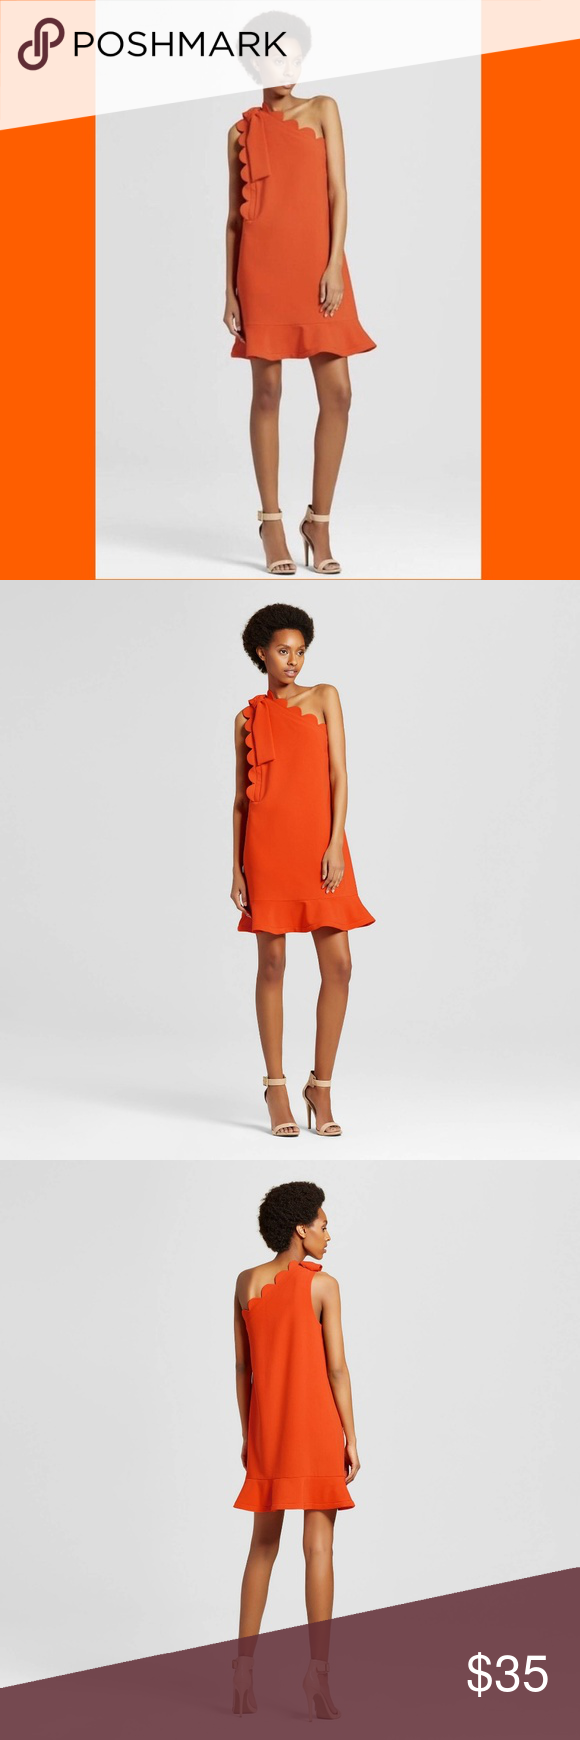 Victoria Beckham Target Orange Dress Various Sizes Nwt Chic Summer Dresses Necklines For Dresses Clothes For Women In 30 S [ 1740 x 580 Pixel ]